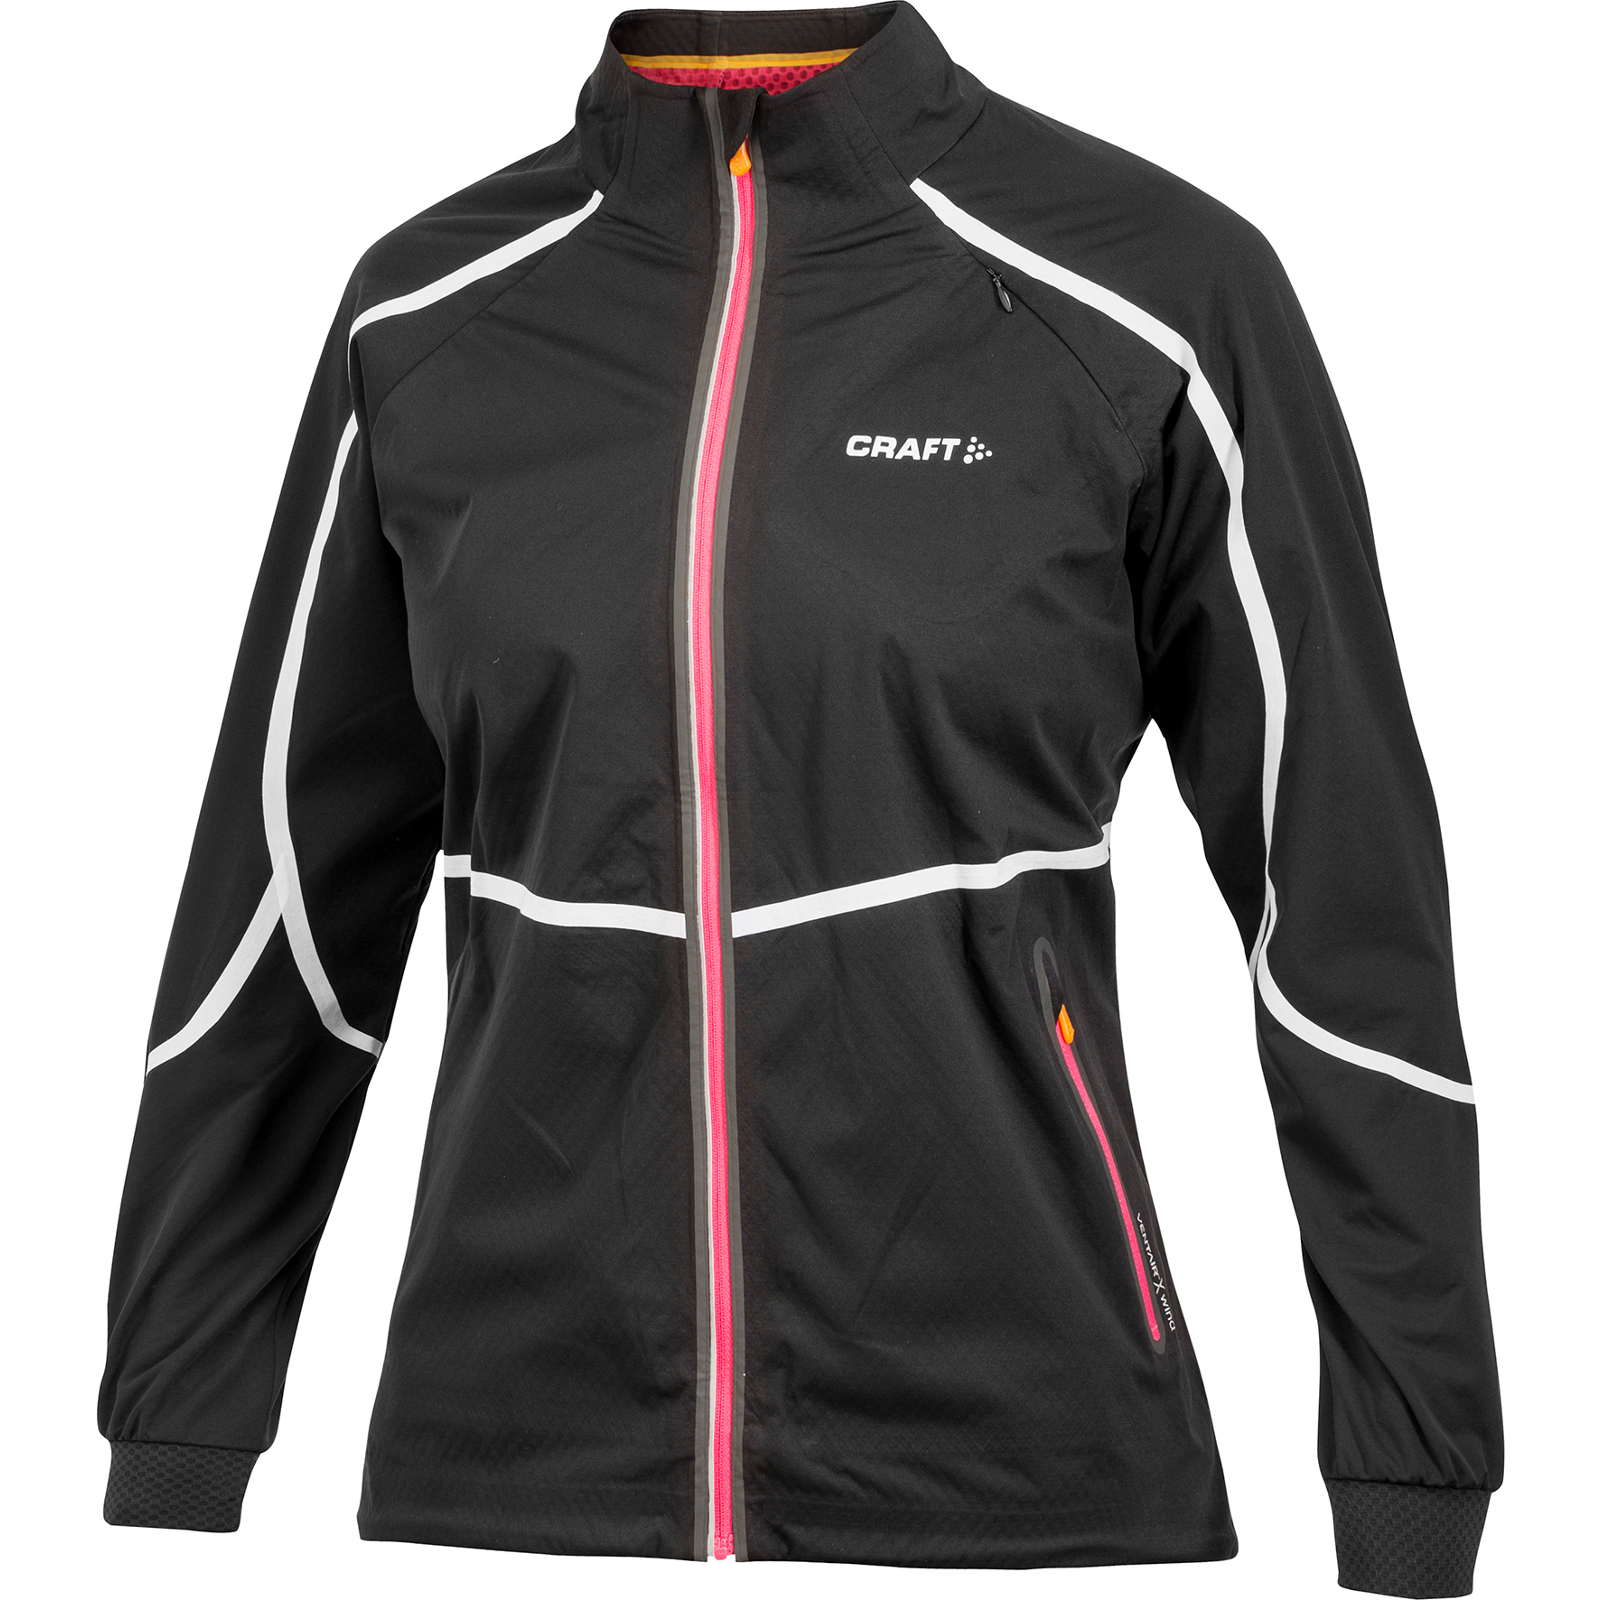 Craft Elite Cross Country High End Jacket